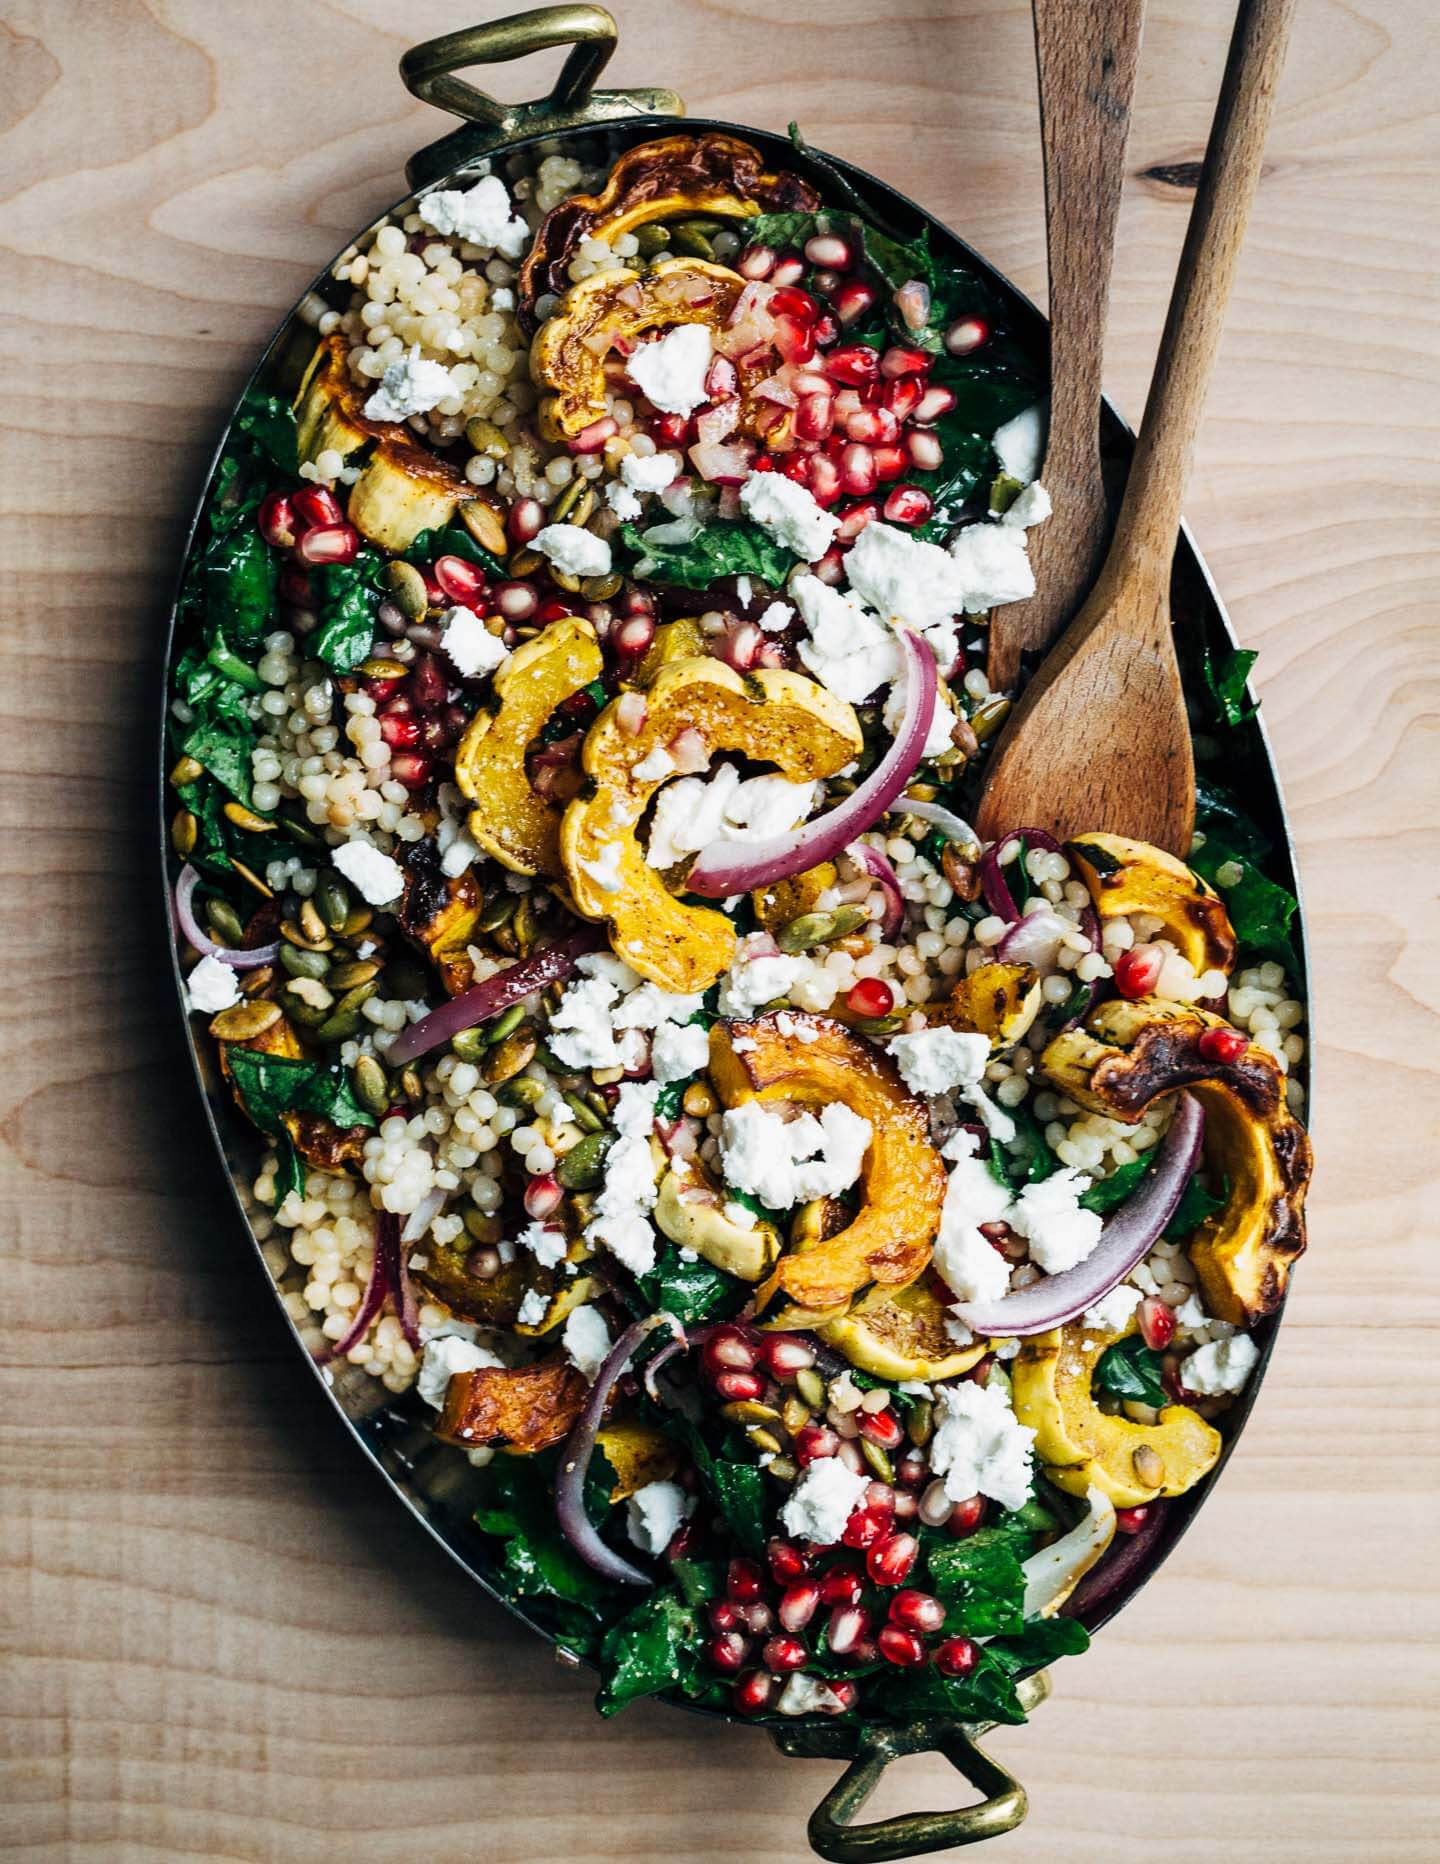 Pearl Couscous And Roasted Delicata Squash Salad With Kale And Pomegranate Brooklyn Supper